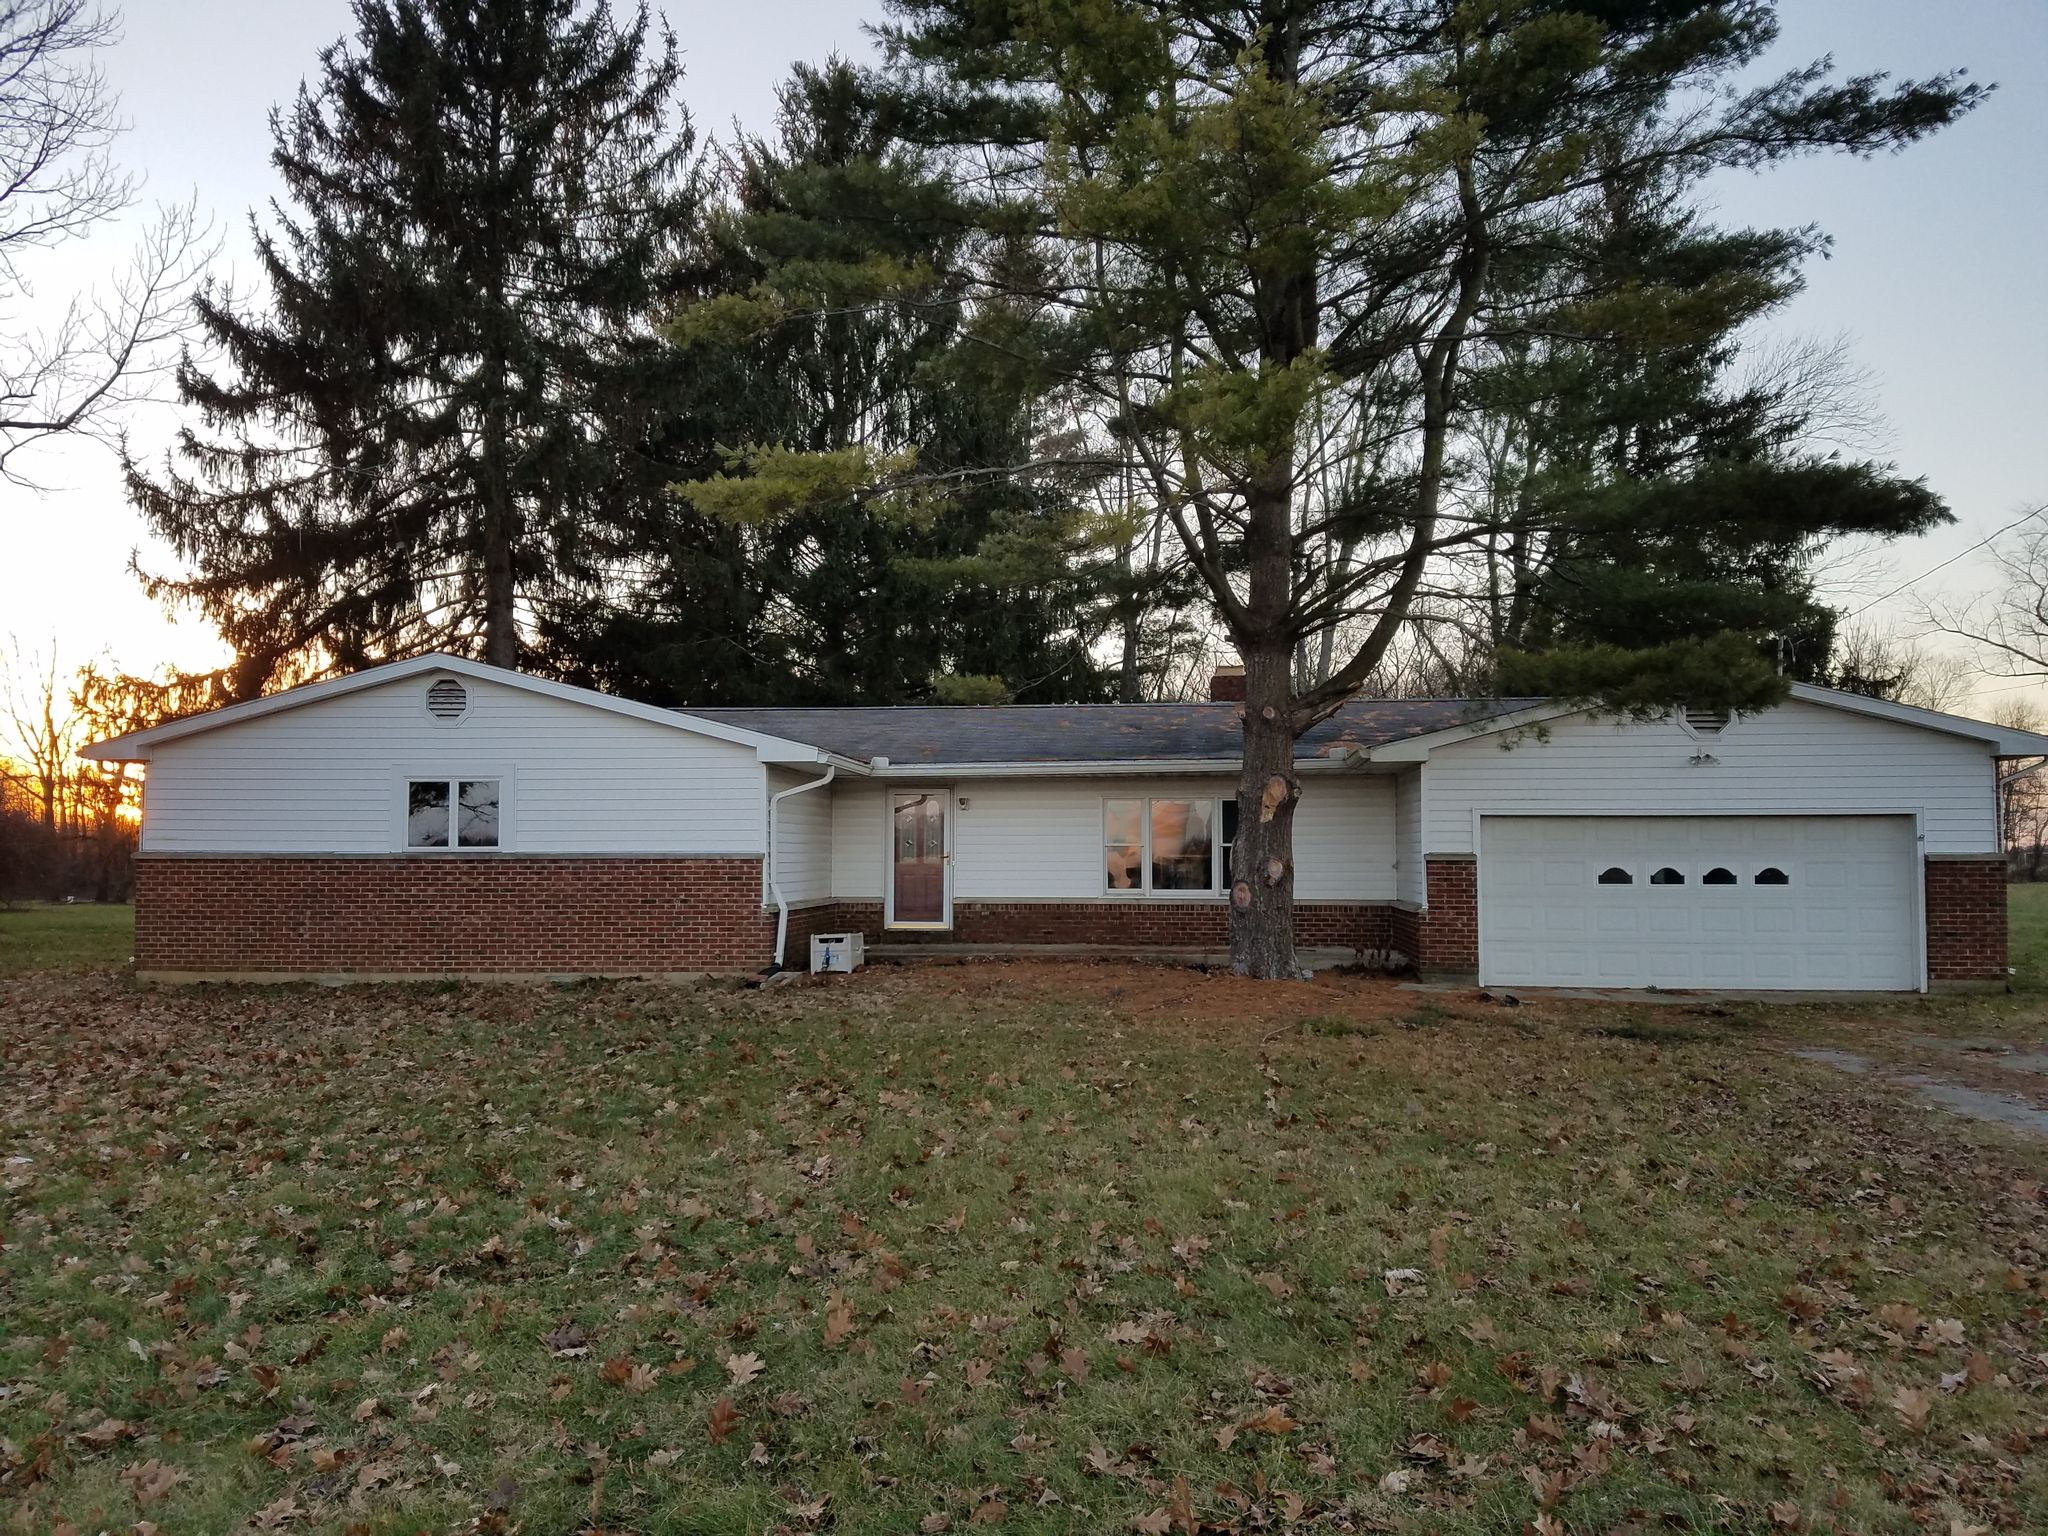 3997 E Enon Rd Yellow Springs Oh 45387 4 Bed 3 Bath Single